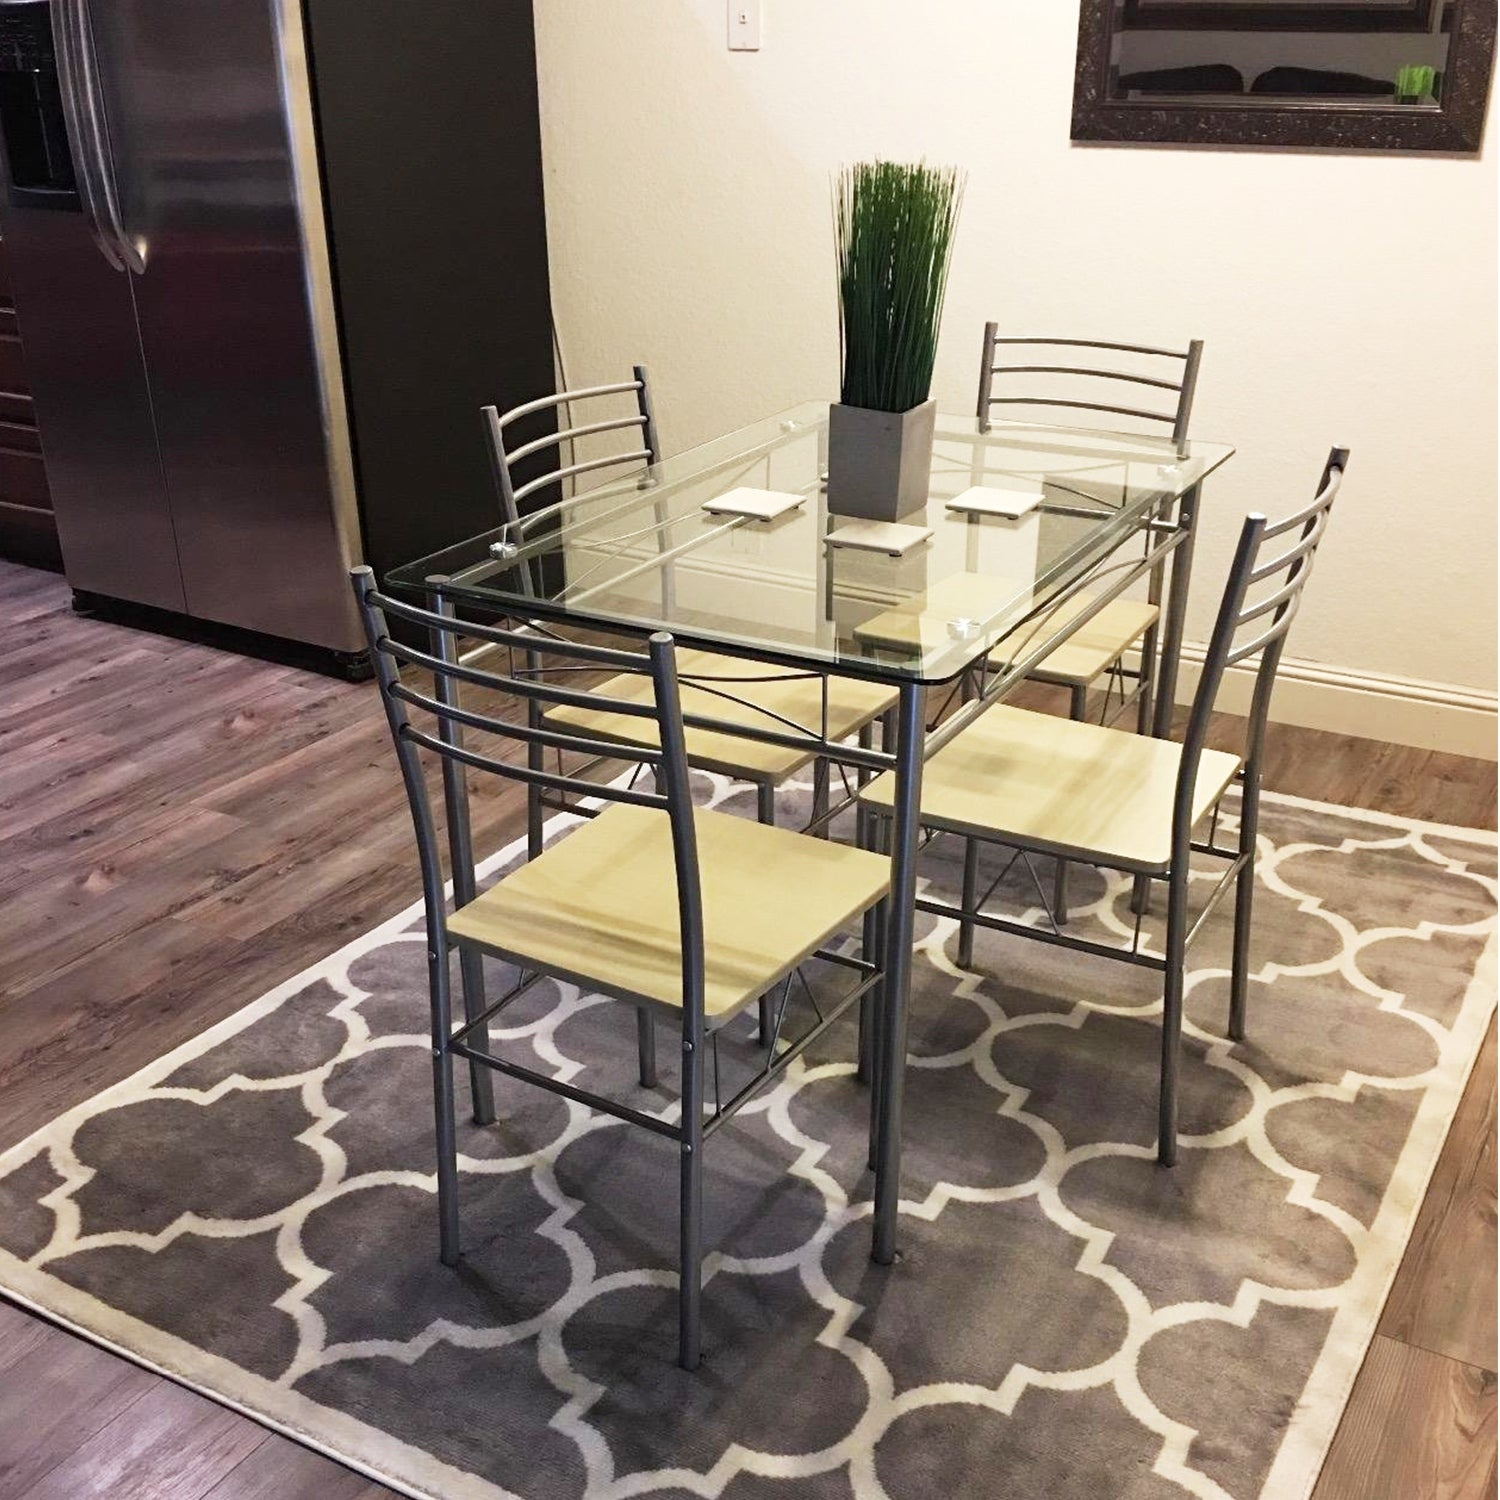 Shop VECELO Kitchen Dining Table Sets,Glass Table With 4 Chairs   Free  Shipping Today   Overstock.com   18541669